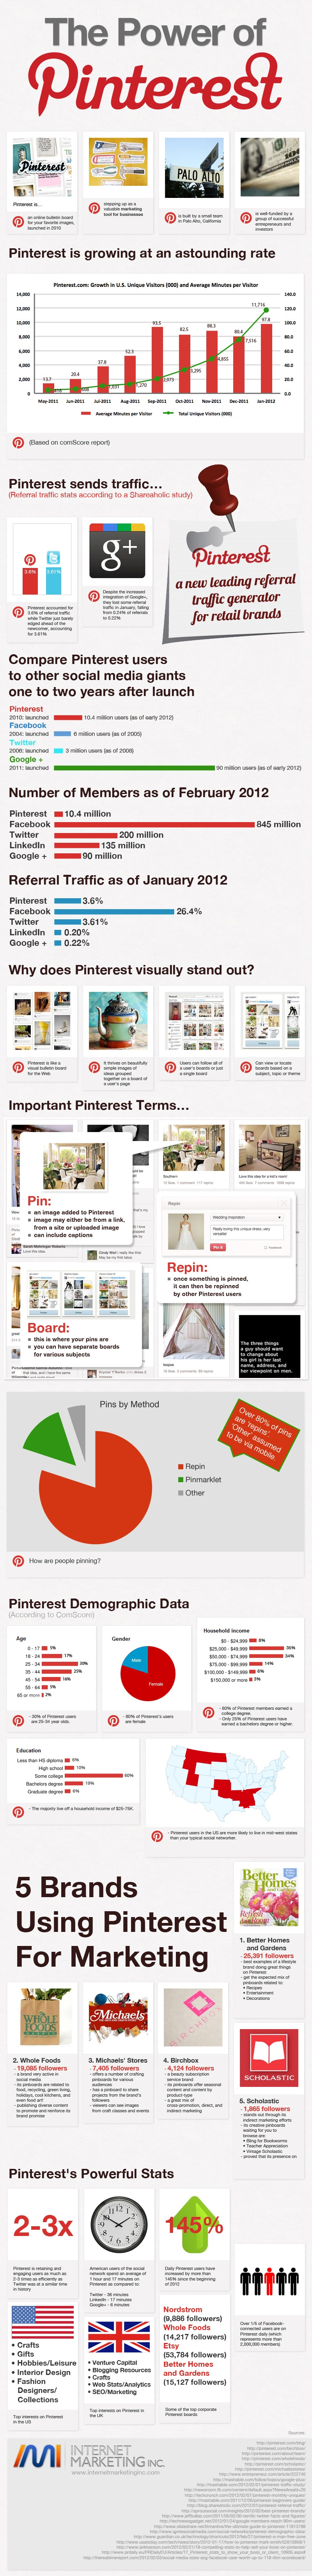 Comparing Pinterest With Facebook & Twitter [Infographic]